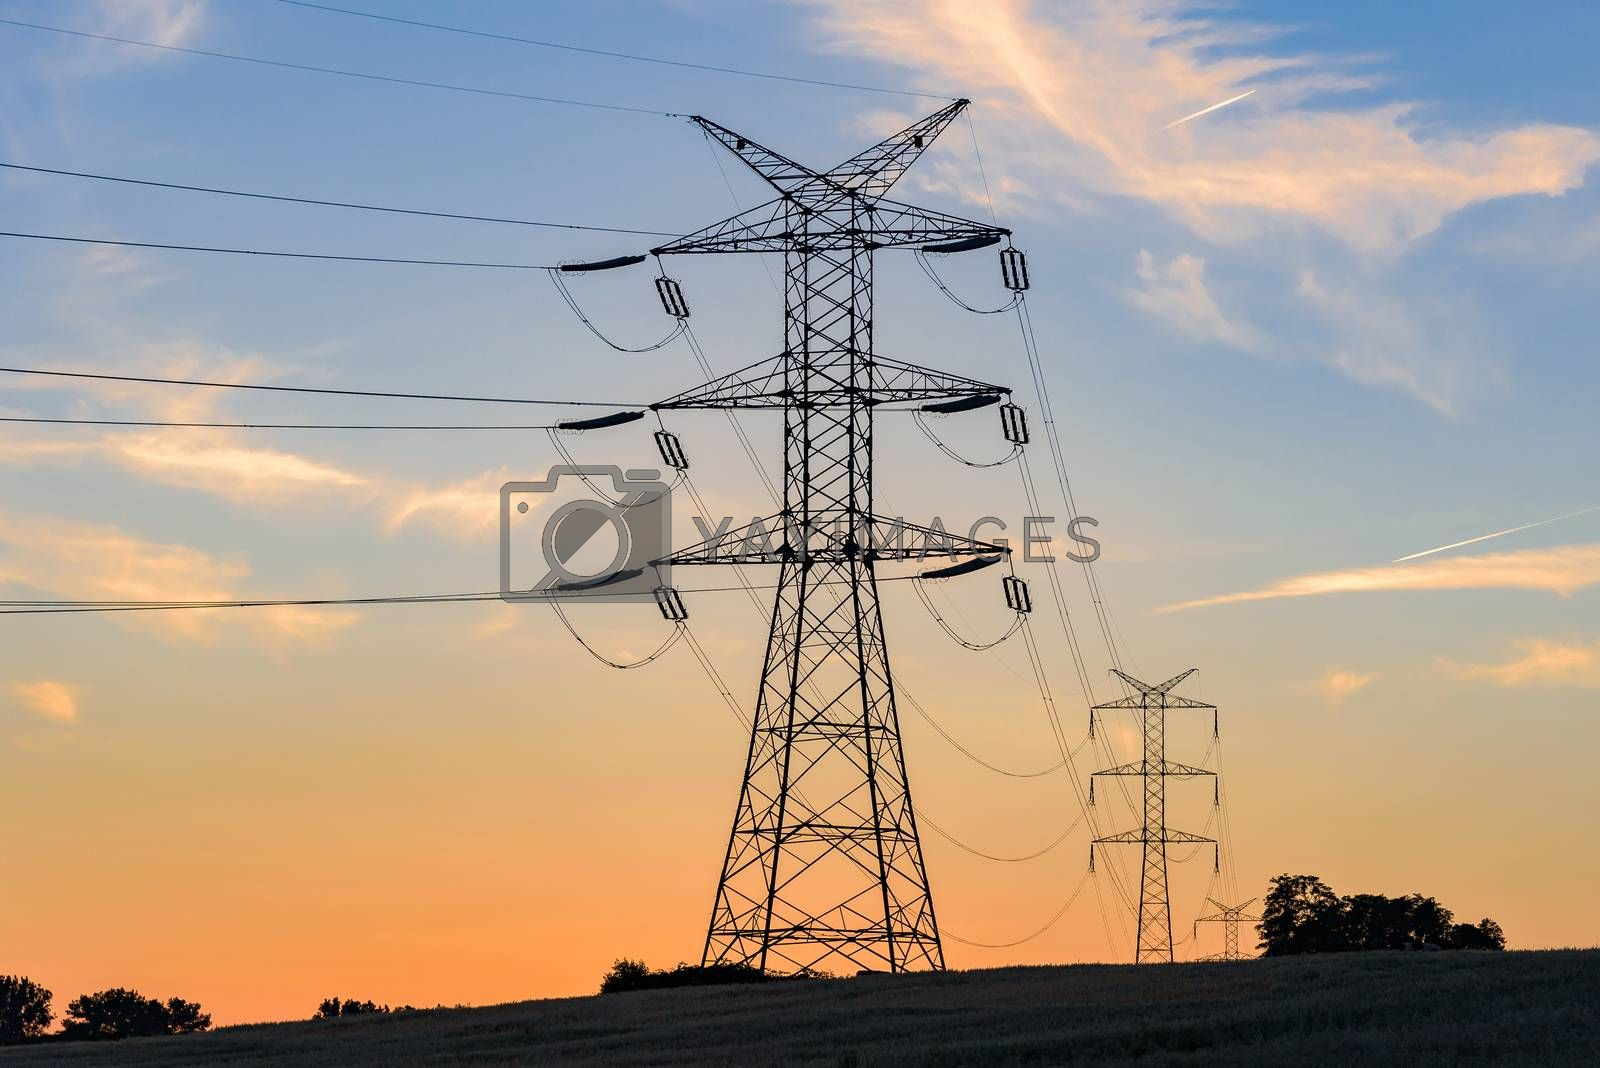 Electricity pylons and high voltage power lines at sunset